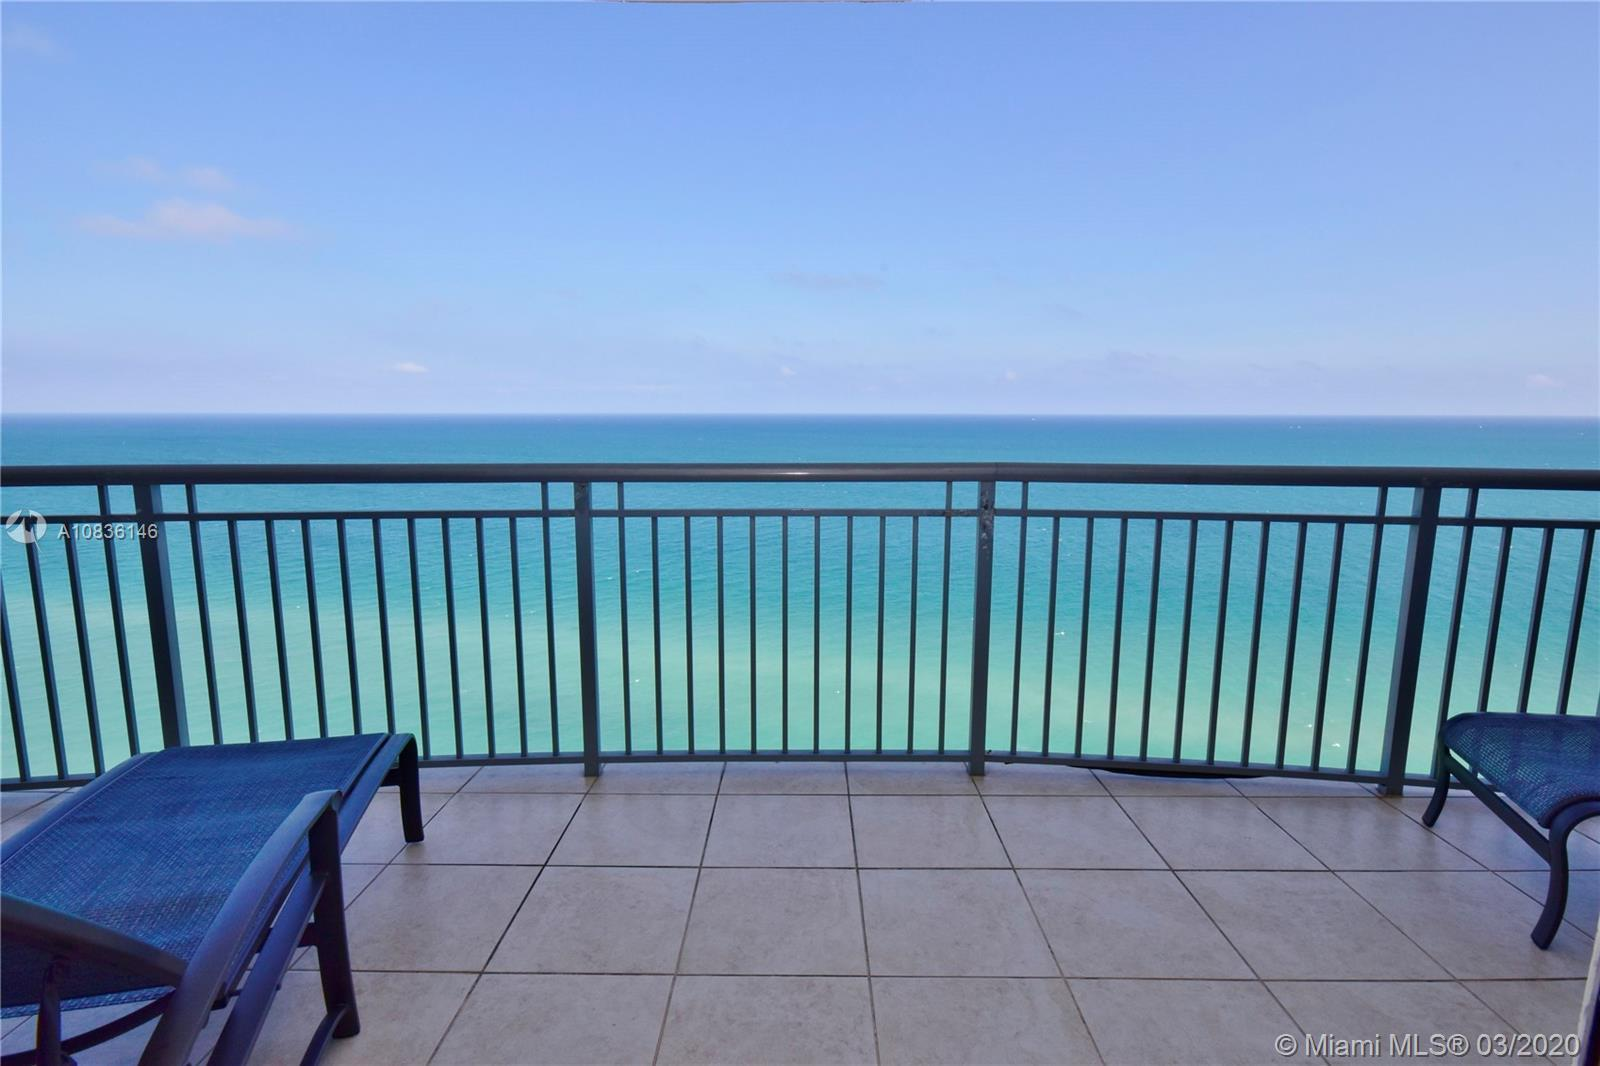 RARELY AVAILABLE LINE 01 WITH AMAZING DIRECT OCEAN VIEWS FROM EVERY ROOM. Washer and dryer inside th